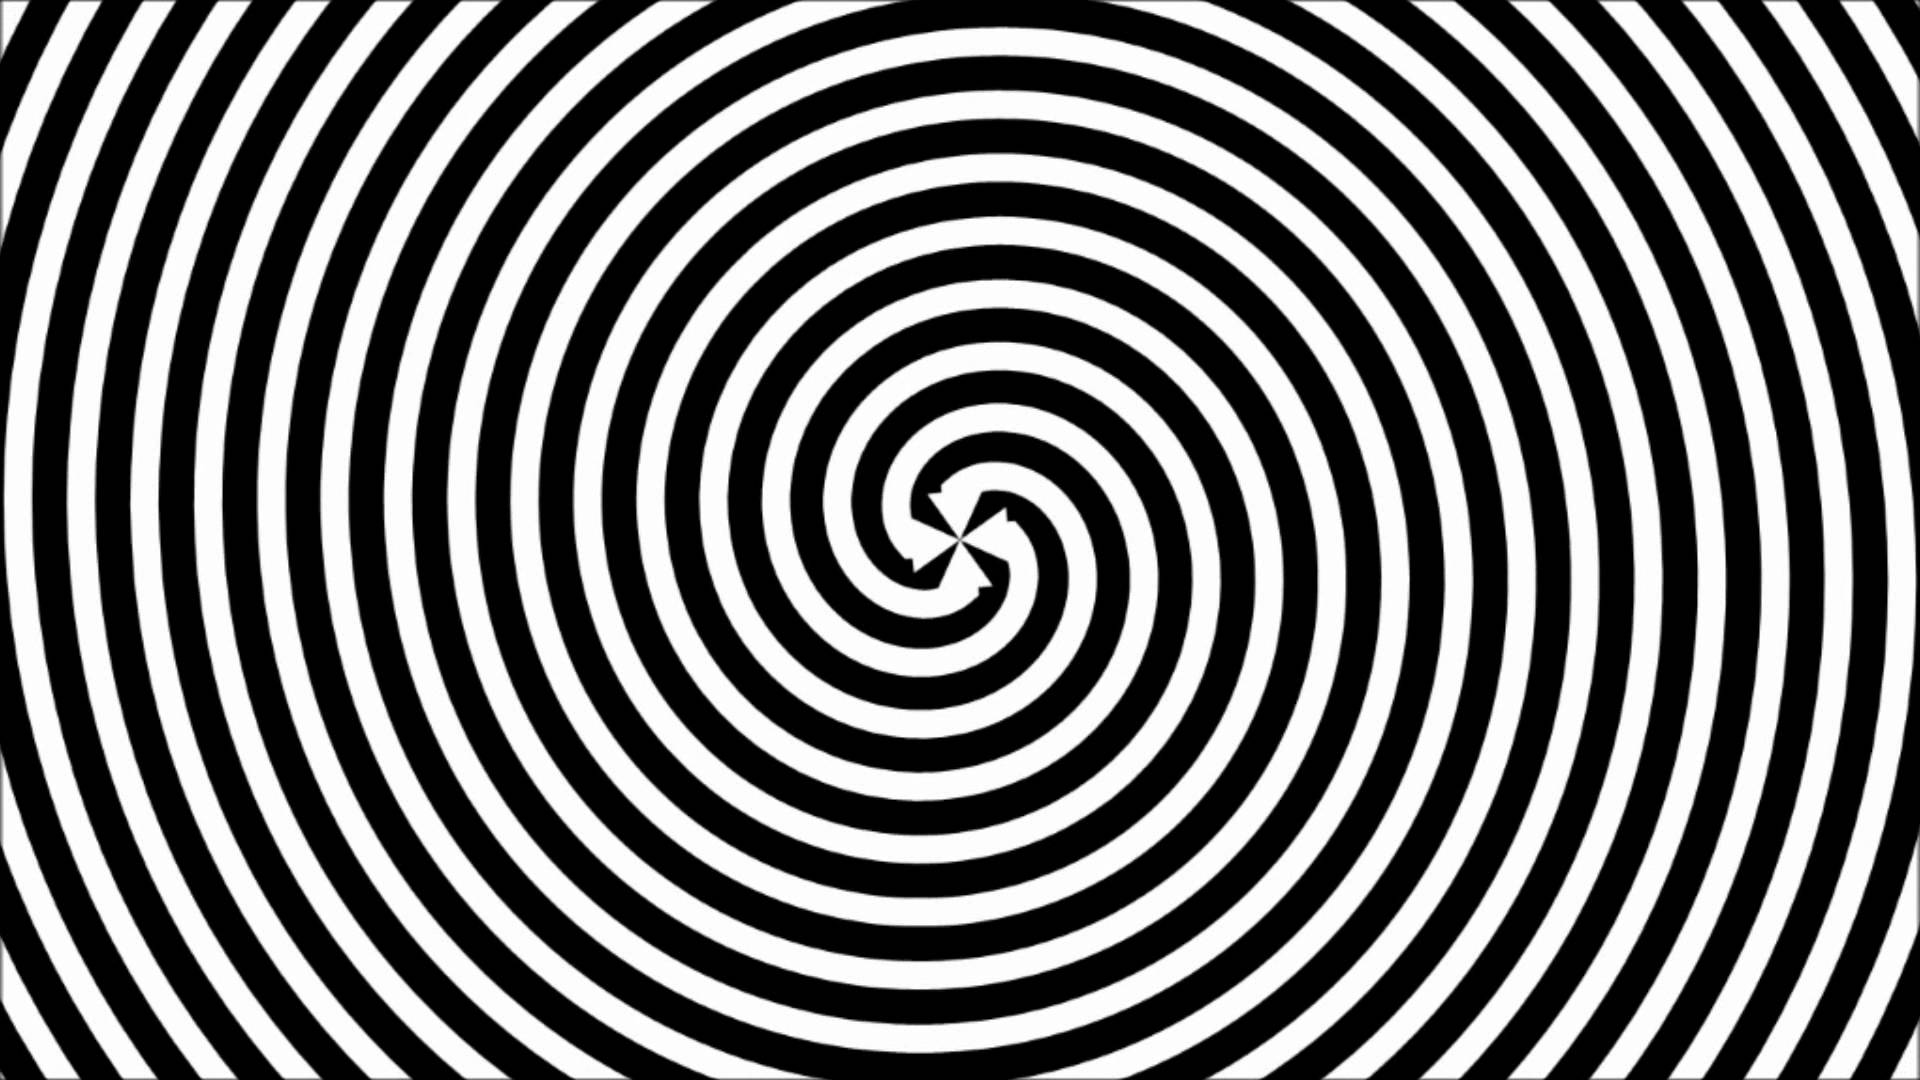 Hypnosis Wallpaper HD 1920x1080